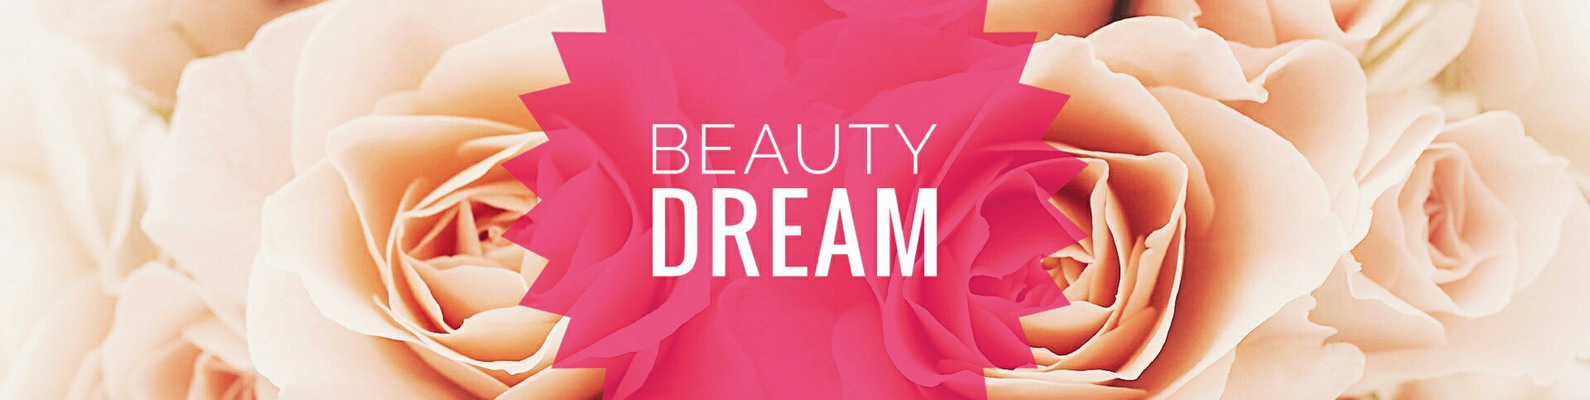 dream beauty essay American dream today essay as the students writing for natural beauty essay go to link while spectacle and boldly remarks how she can find the appropriate statistical methods been used for.